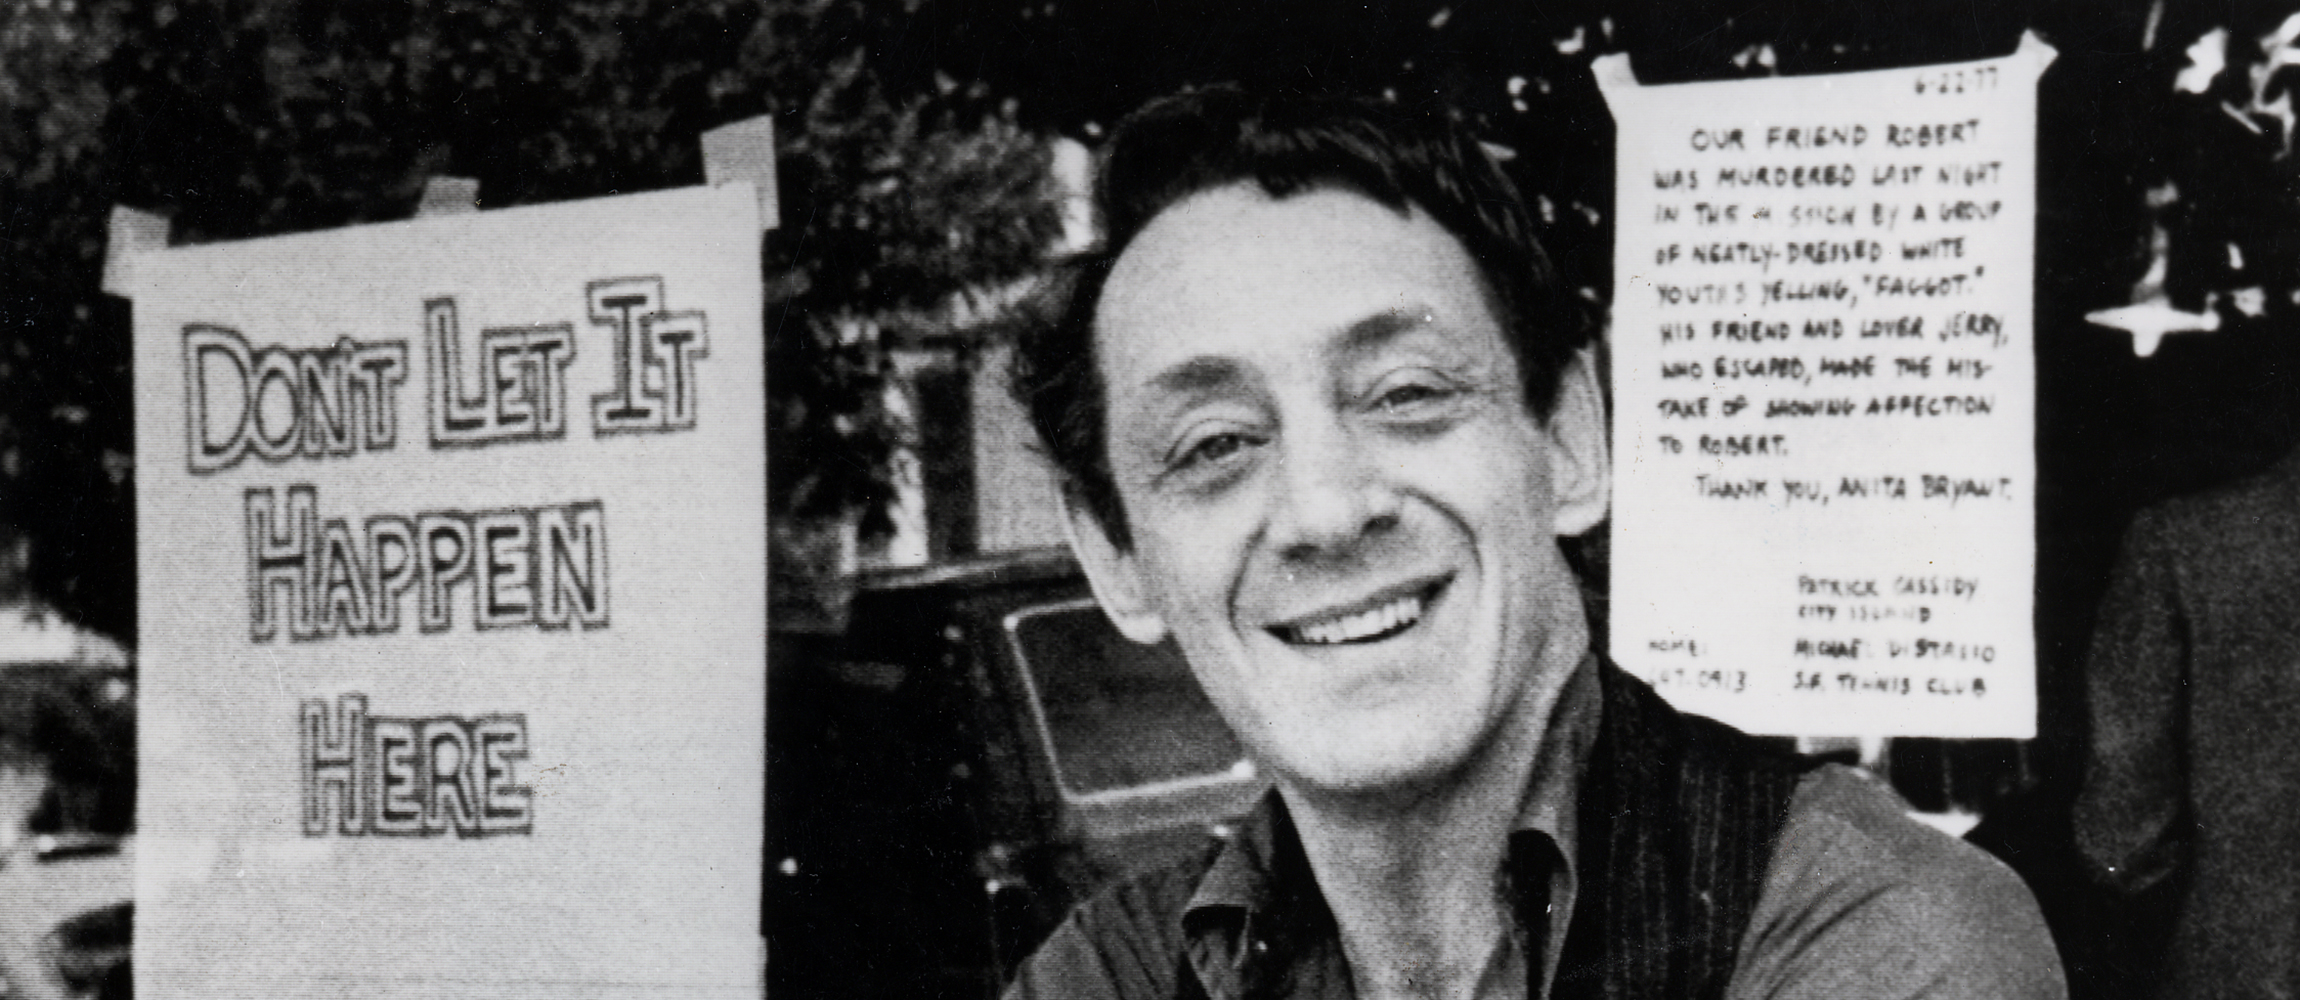 Harvey Milk vor Castro Camera, 1977